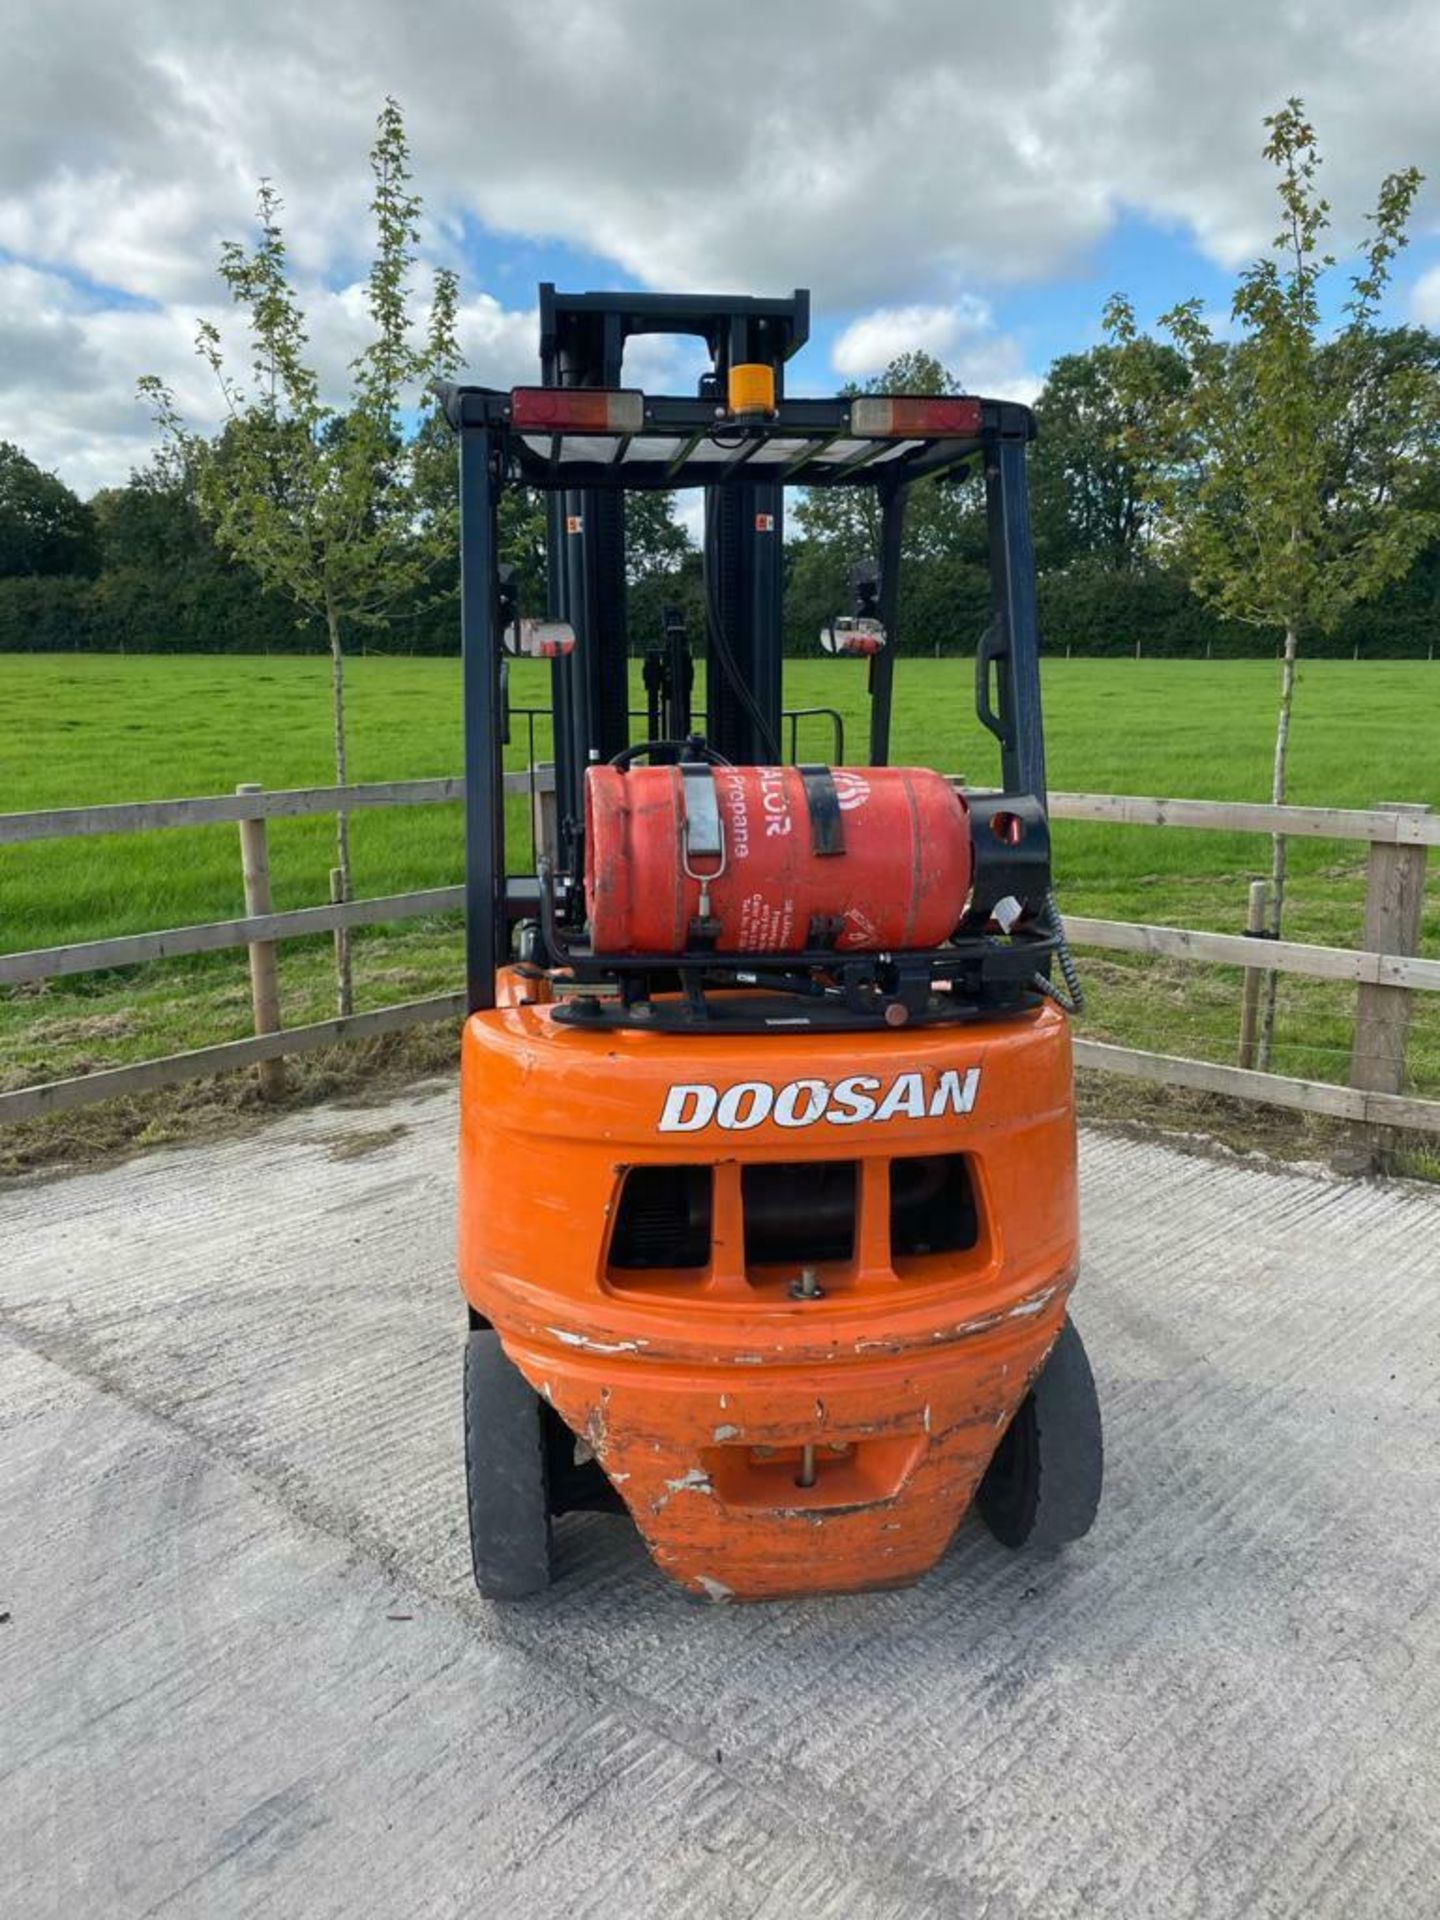 Lot 109 - DOOSAN 2 TON GAS FORK LIFT, MODEL: G20G, 2016, TRIPLE MAST, SIDESHIFT, 5990 MM - 6 METRE, 1789 HOURS